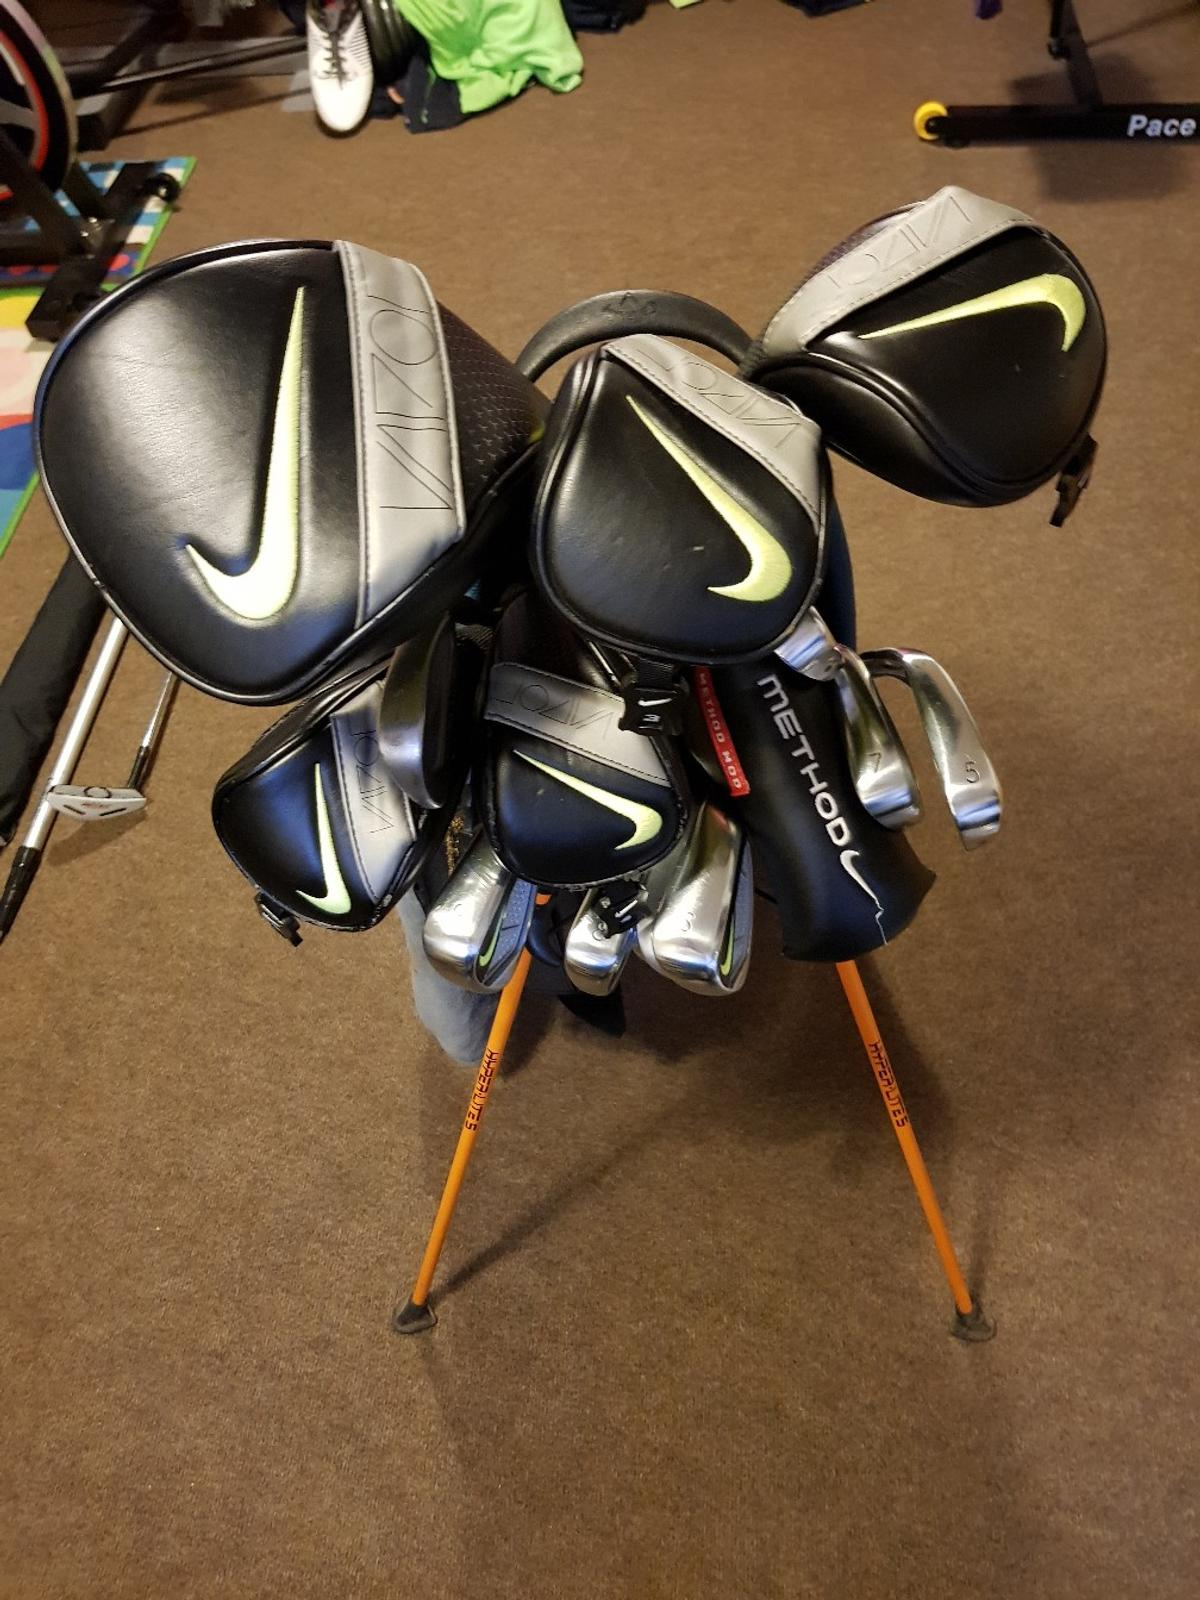 Nike Vapor Golf Clubs Bag And More In Le67 Leicestershire For